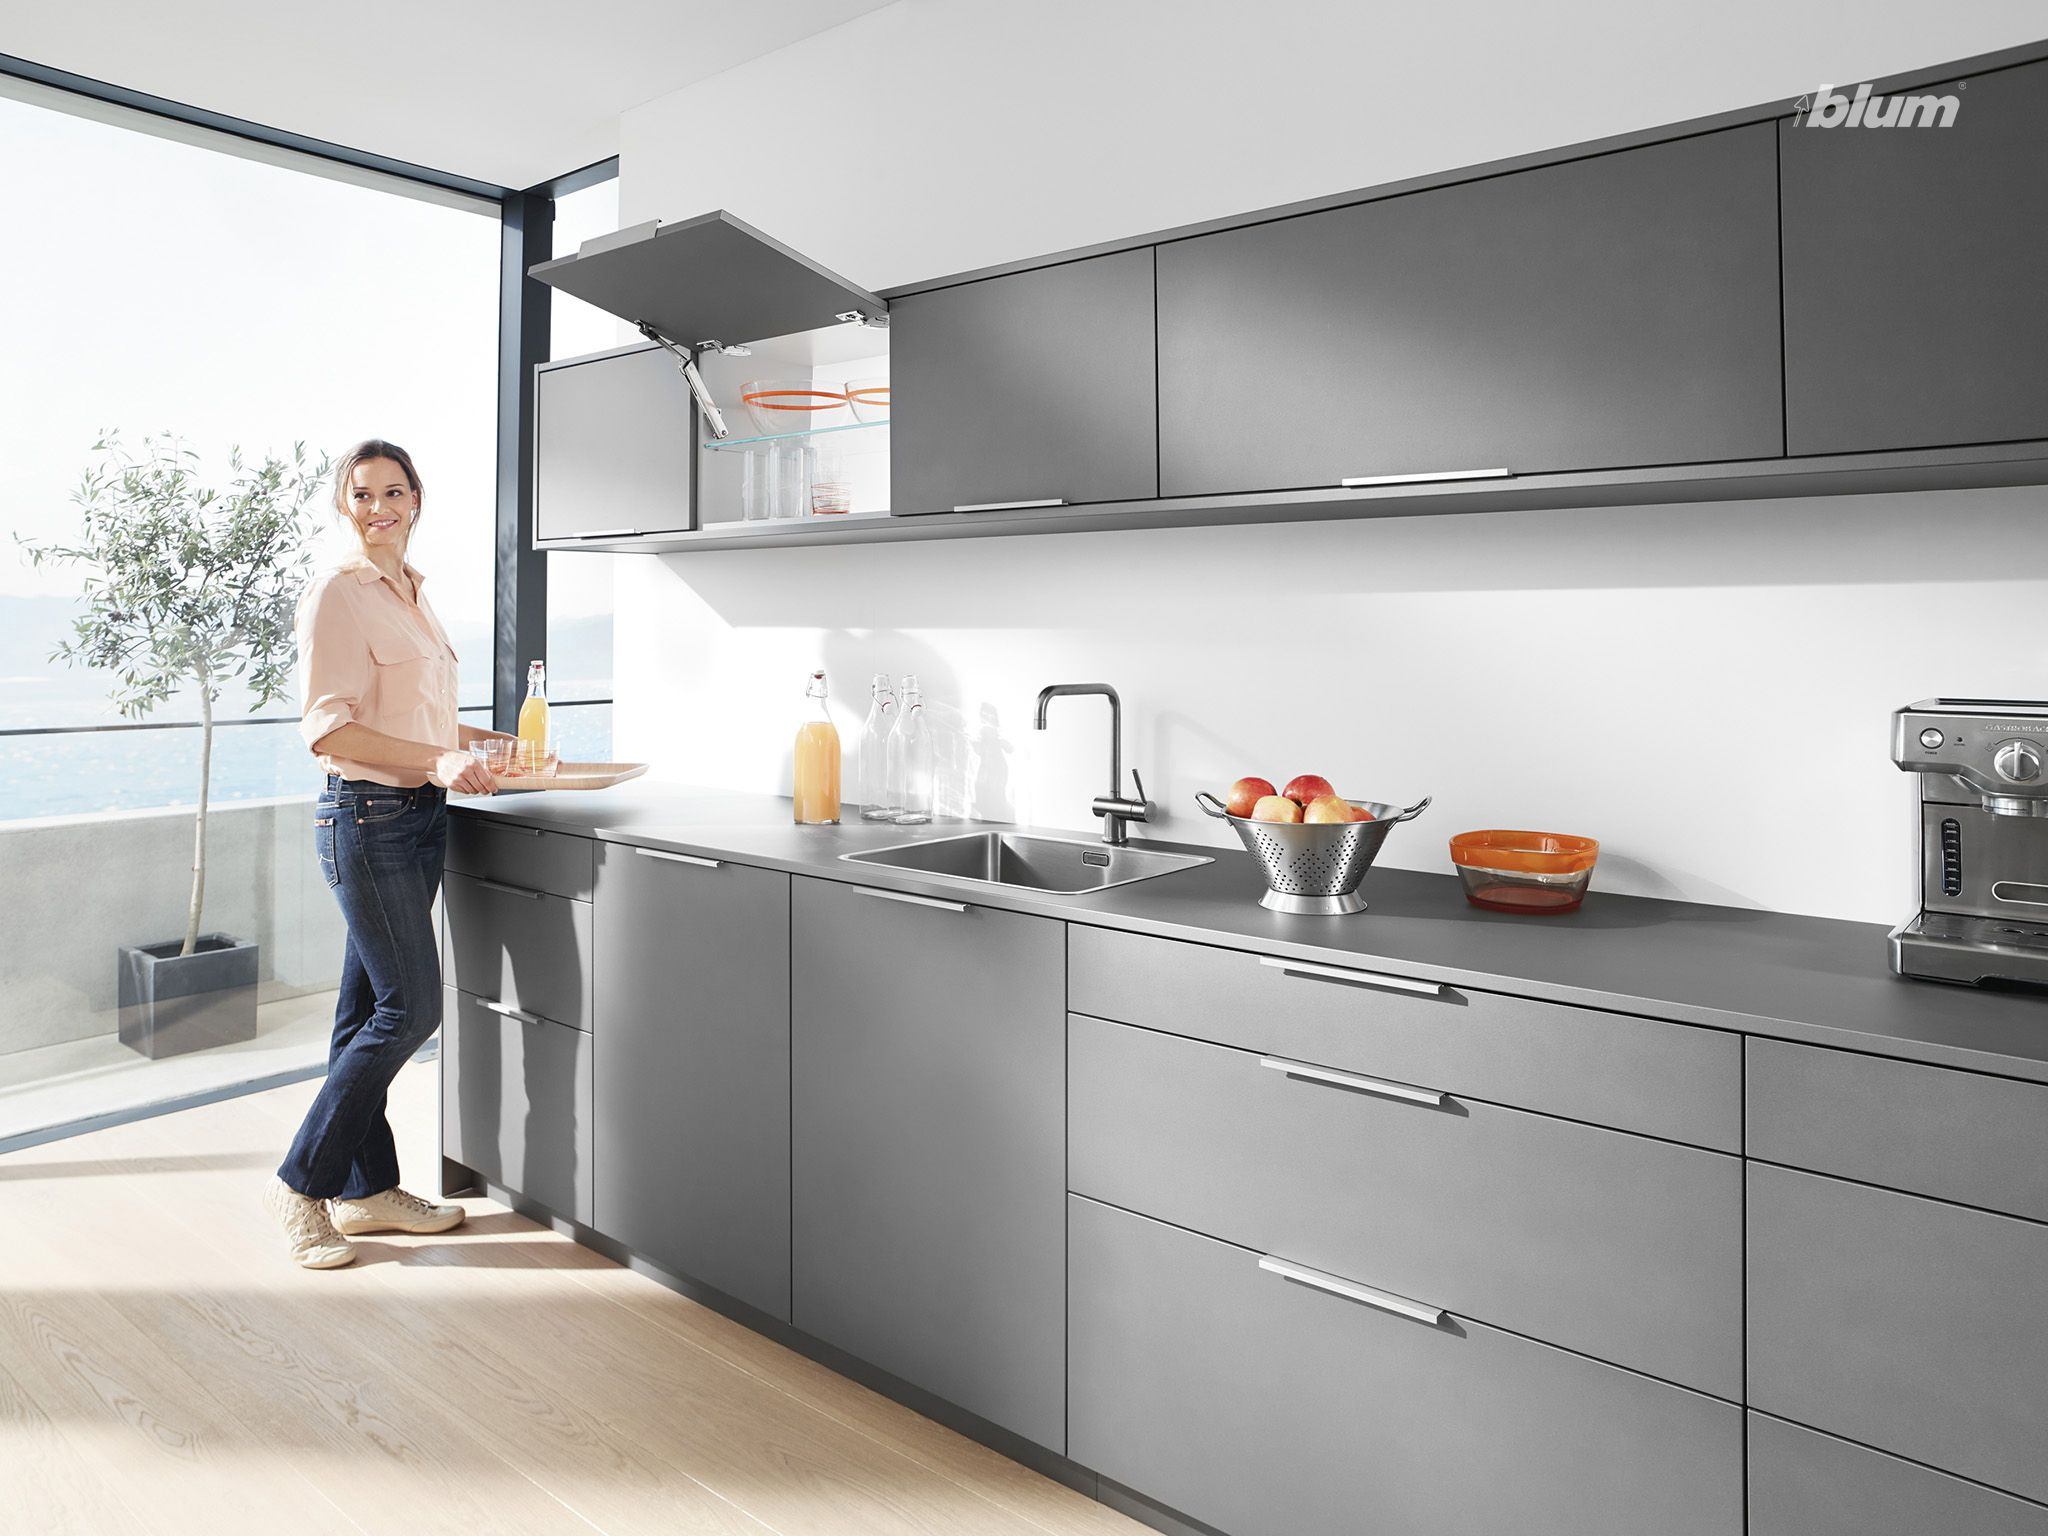 Modern Apartment Kitchen With Wall Mounted Overhead Cabinets